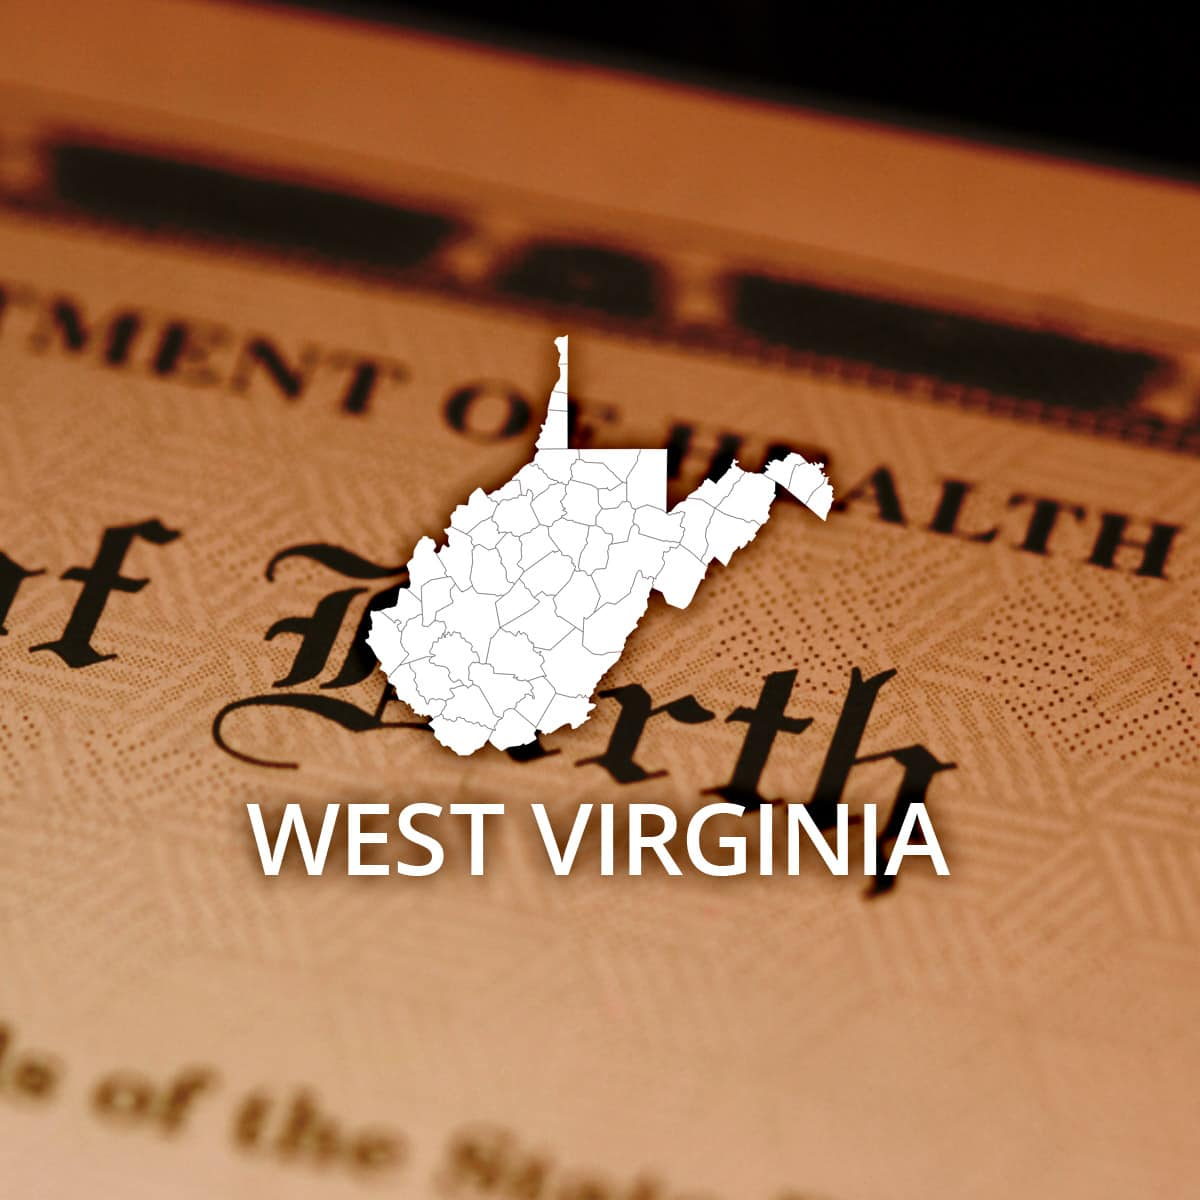 Where to Obtain a West Virginia Birth Certificate